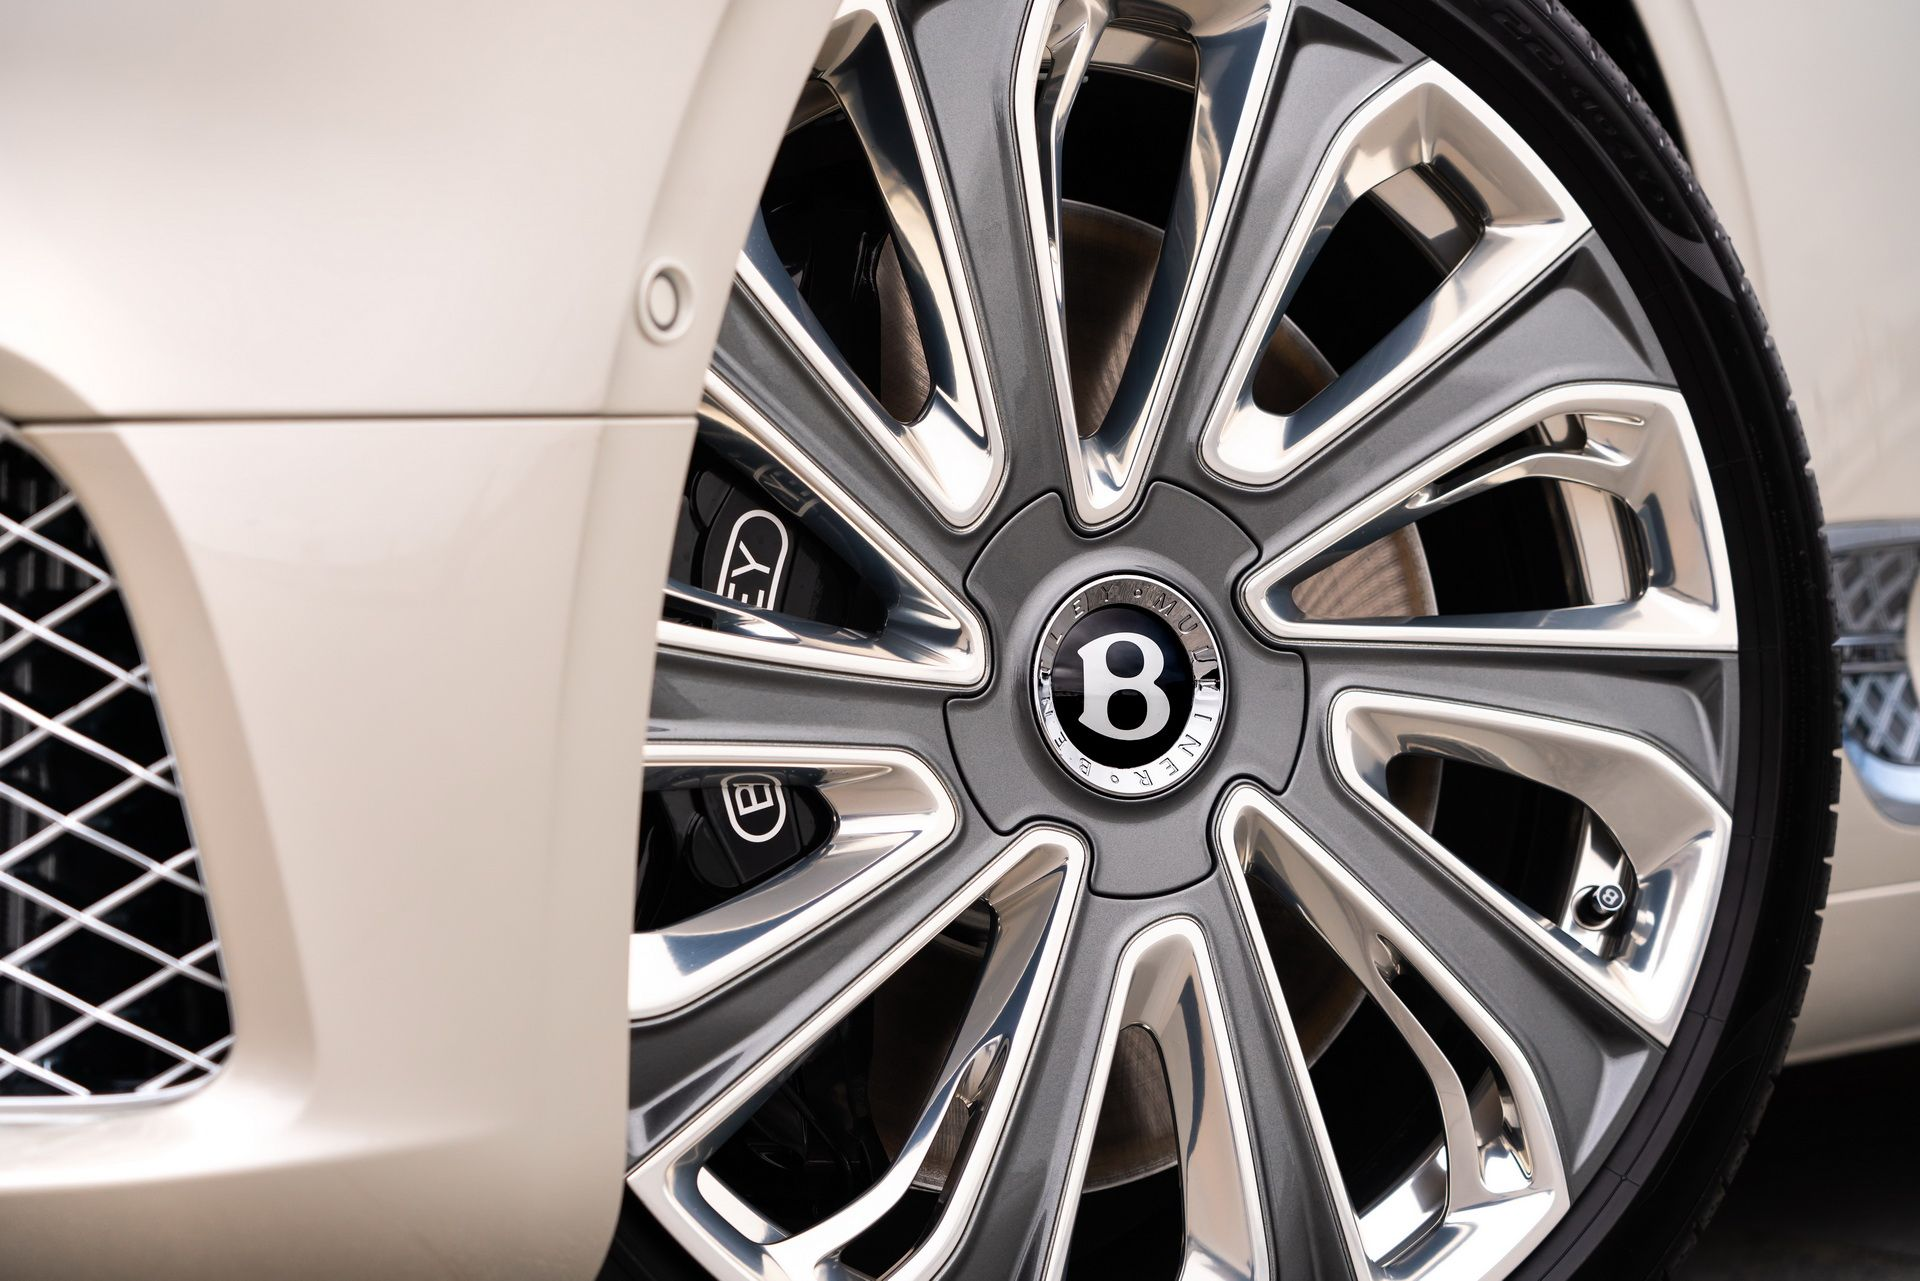 2021 Bentley Continental GT Mulliner Coupe Wheel